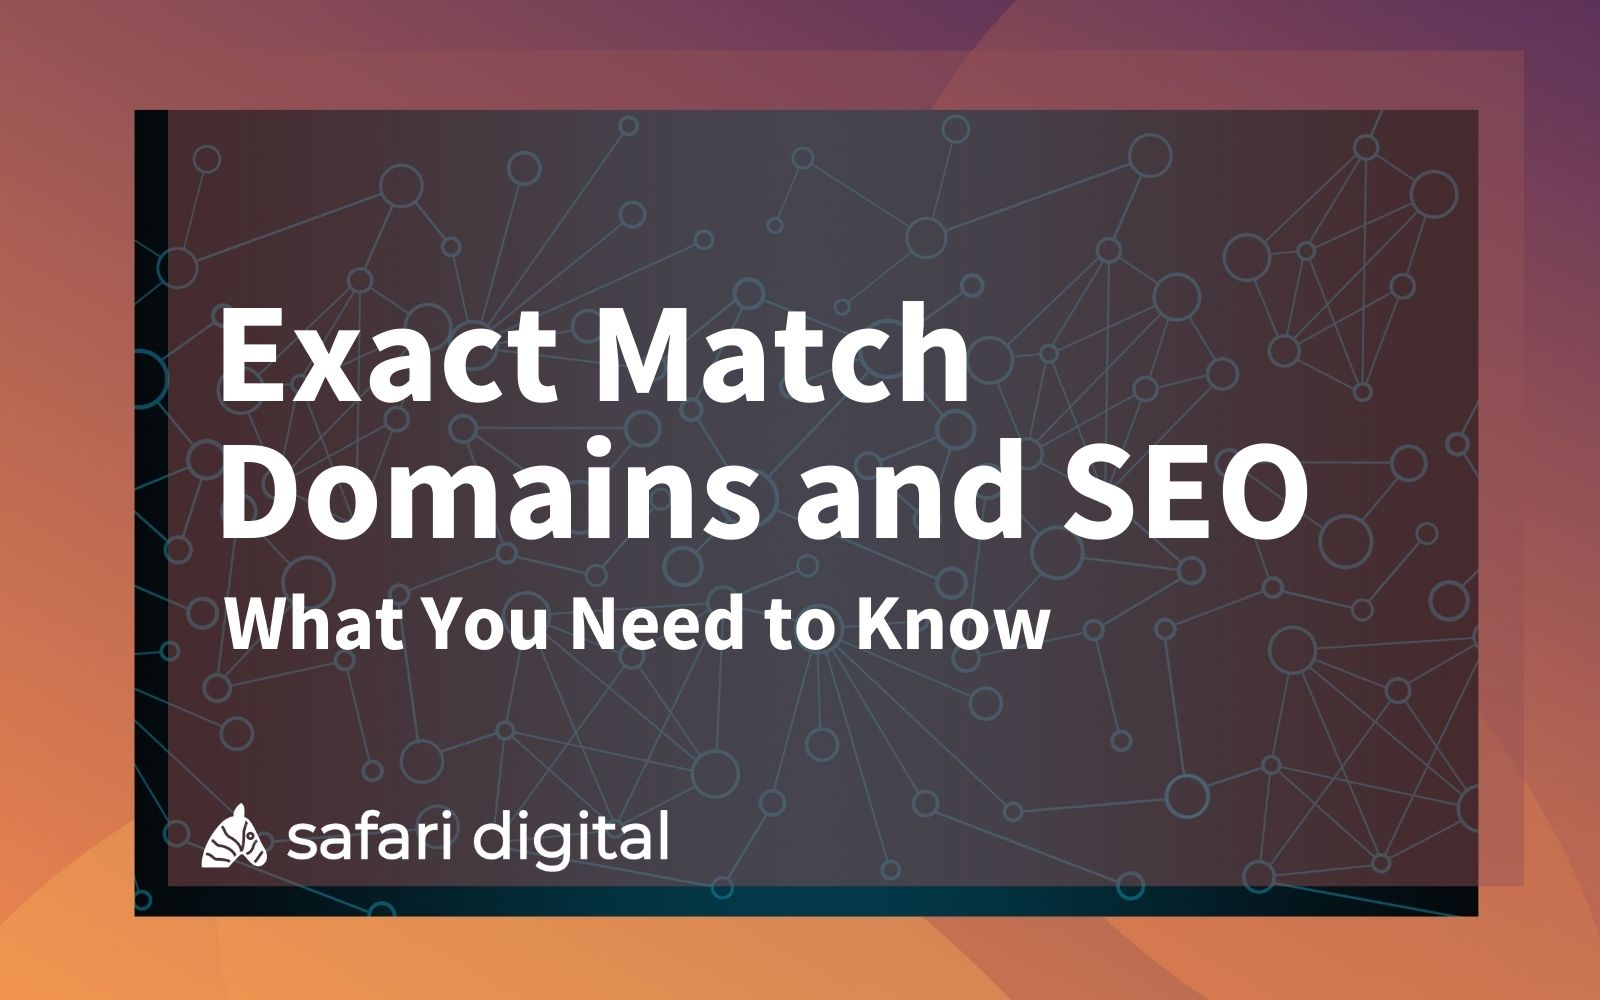 Exact Match Domains and SEO